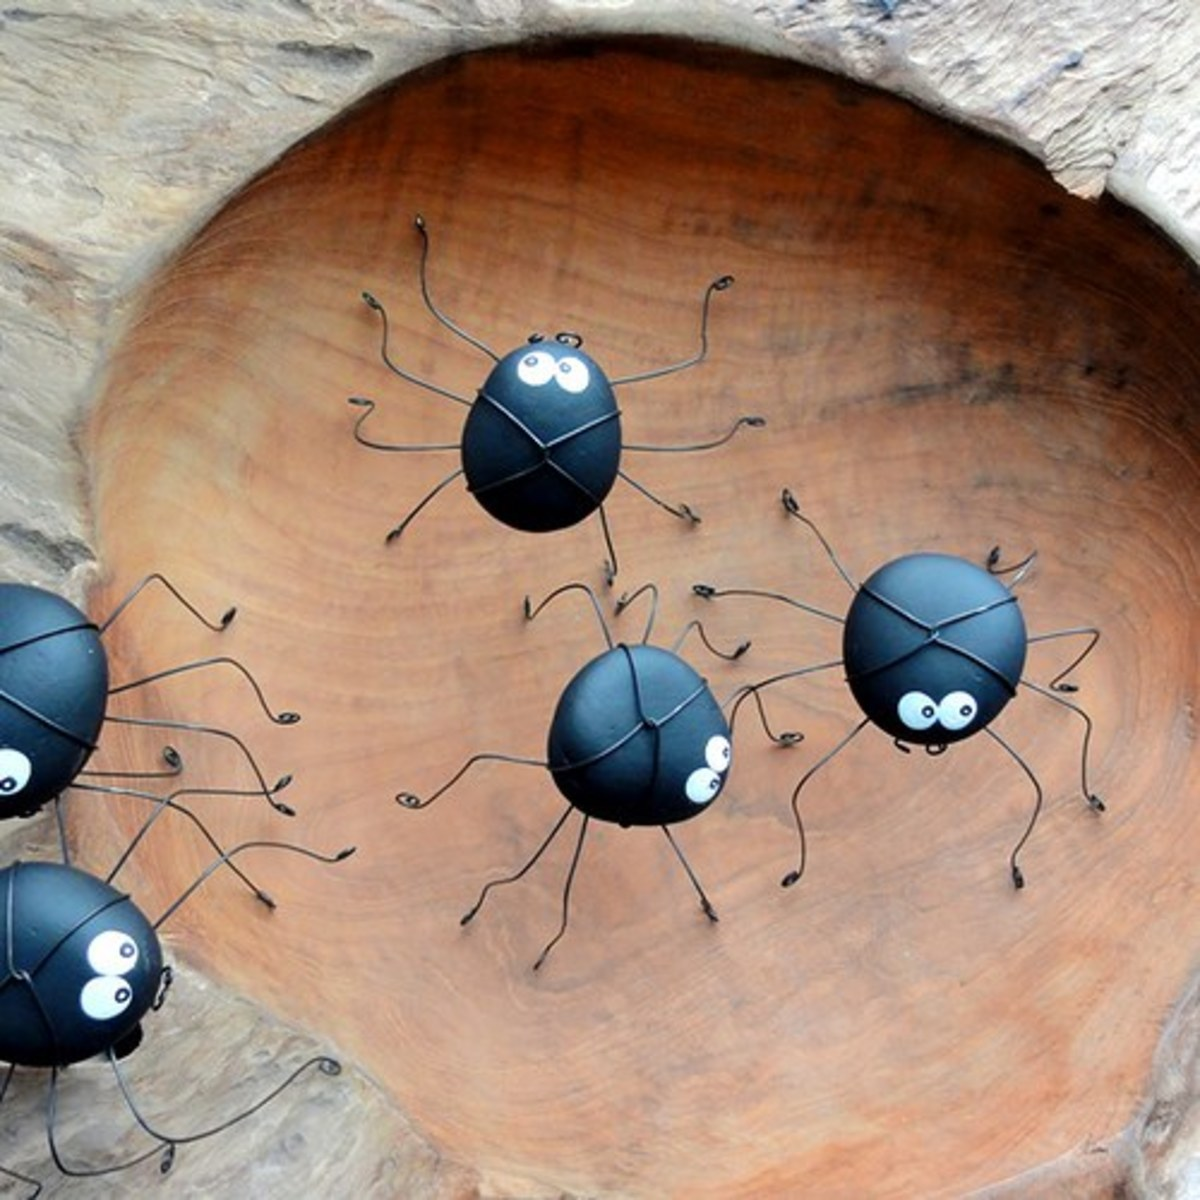 Finish your painted Halloween spider rocks with some thin wire or pipe cleaners for legs.